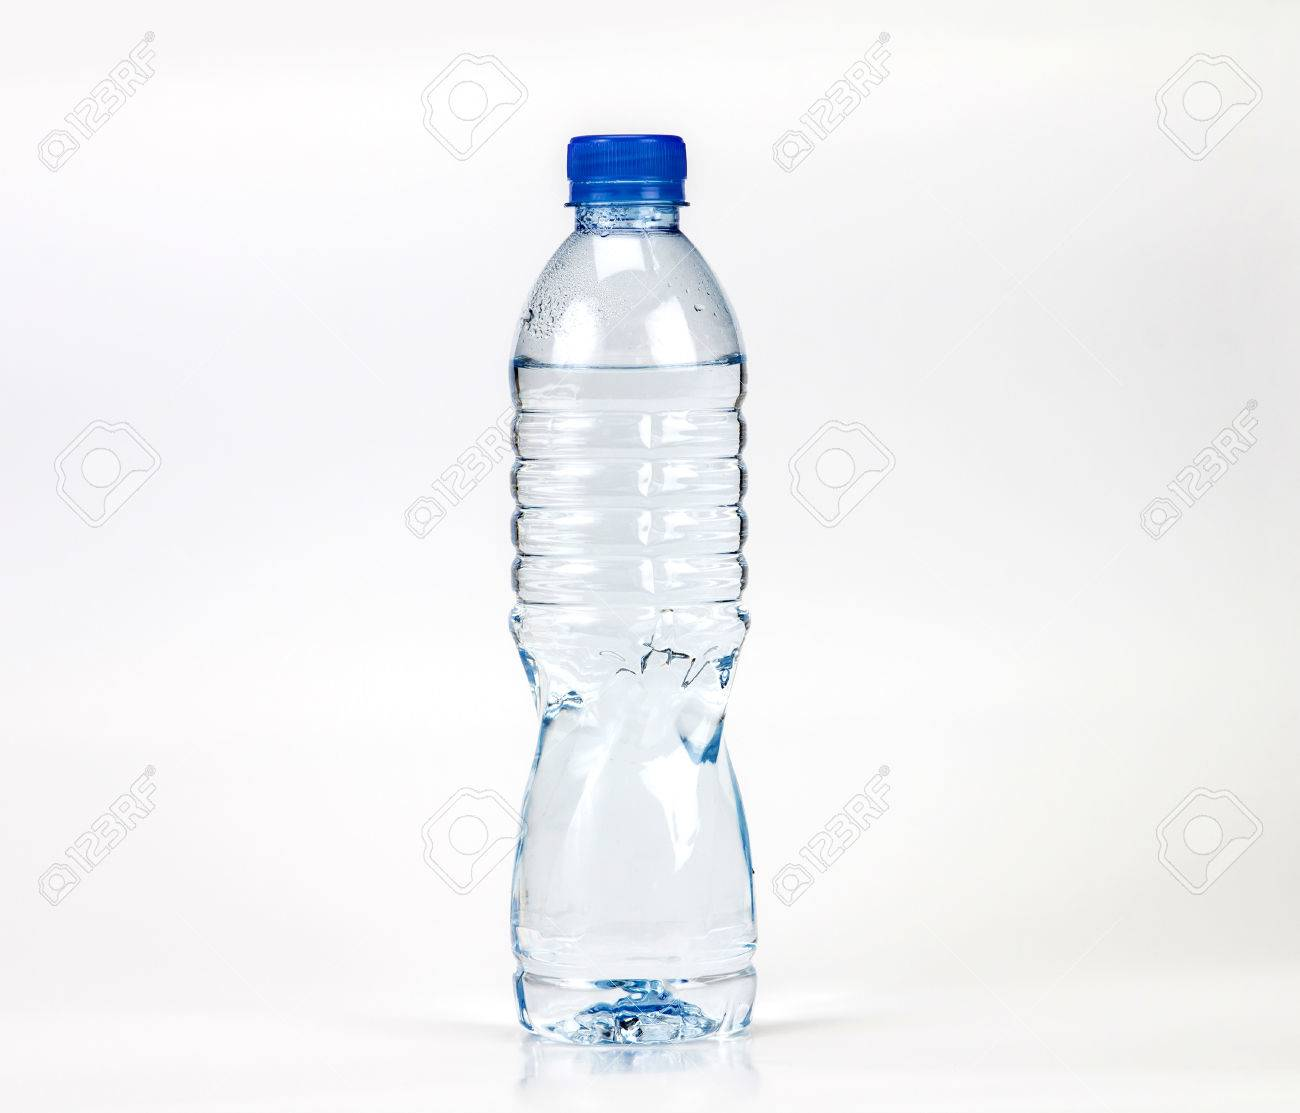 The fresh drink water bottle with small water condense drop inside